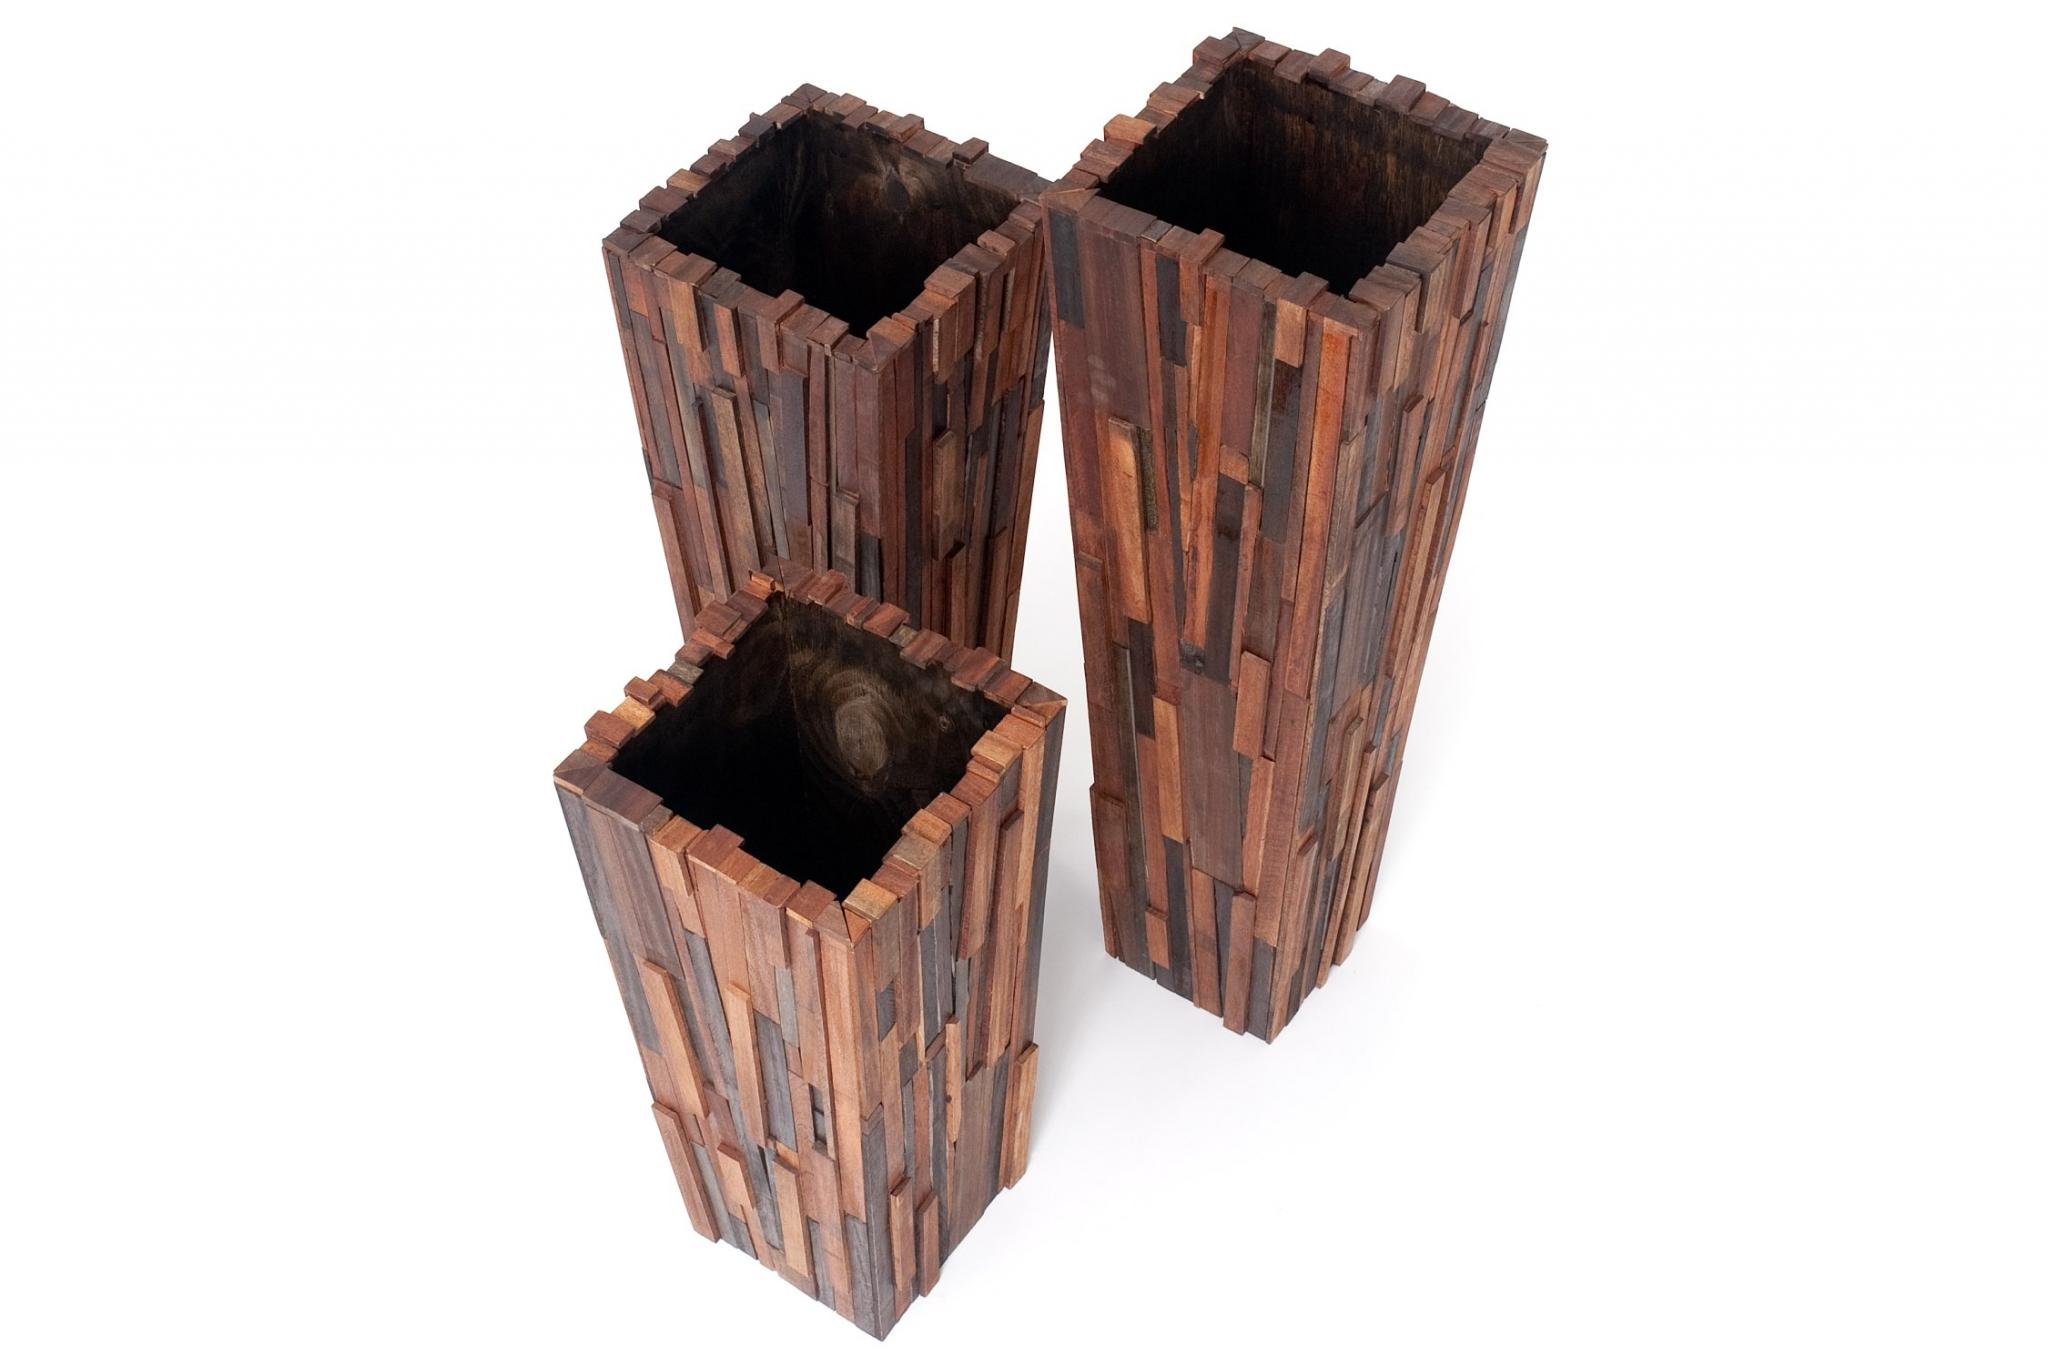 RRotsen-Furniture-Planters-Home-Decor-Wood